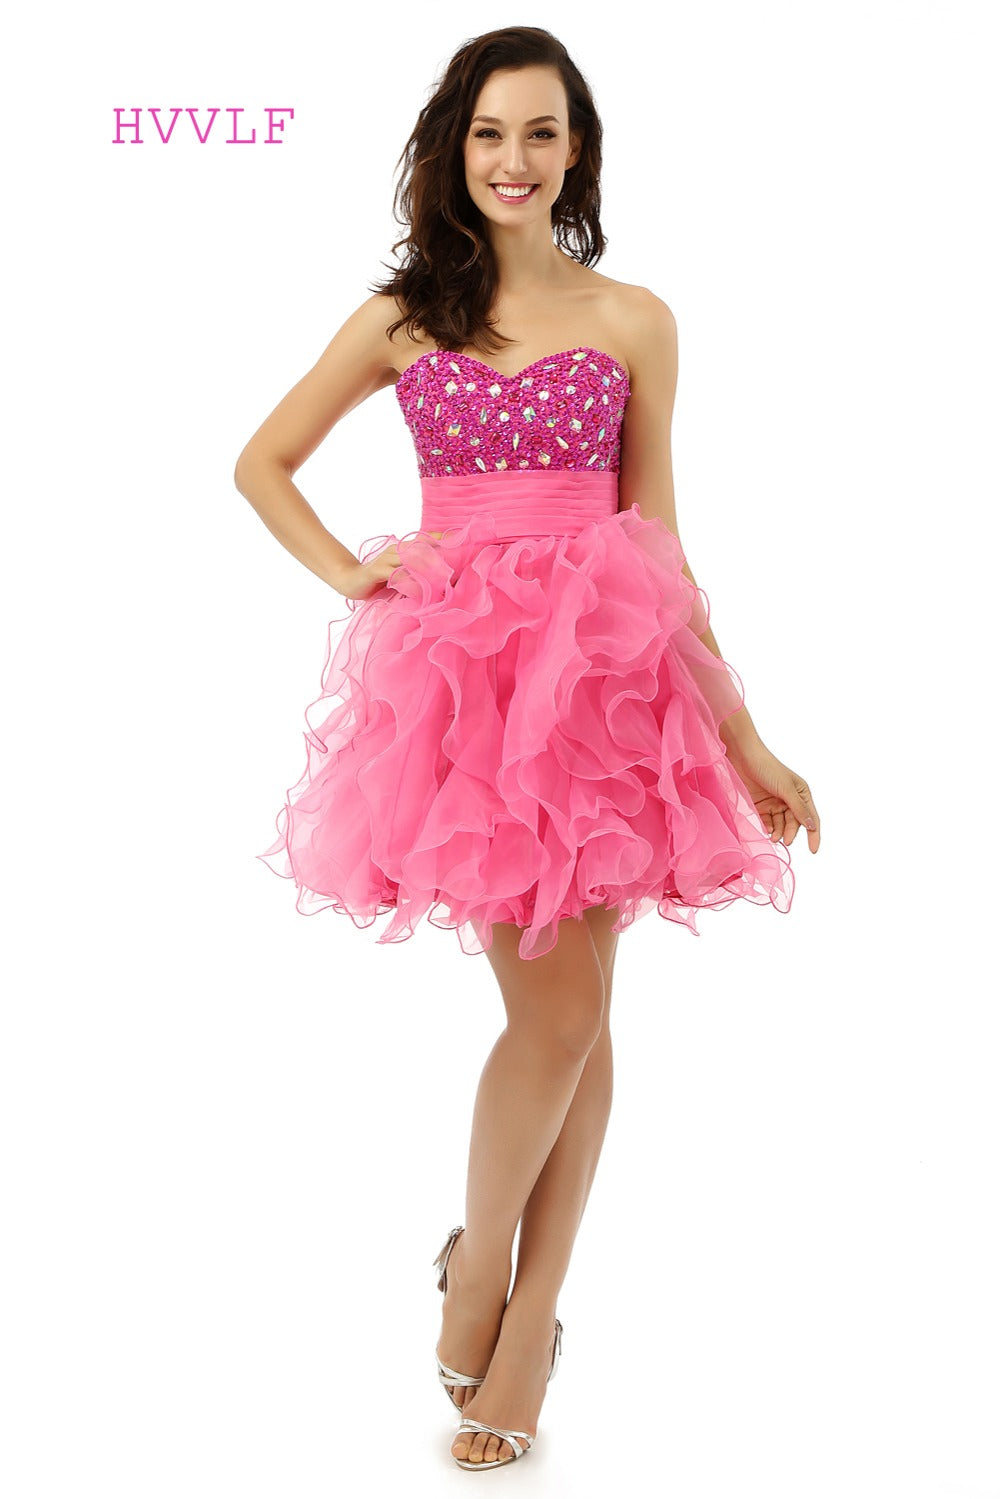 Backless 2018 Homecoming Dresses A-line Sweetheart Short Mini Fuchsia Organza Beaded Crystals Sweet 16 Cocktail Dresses